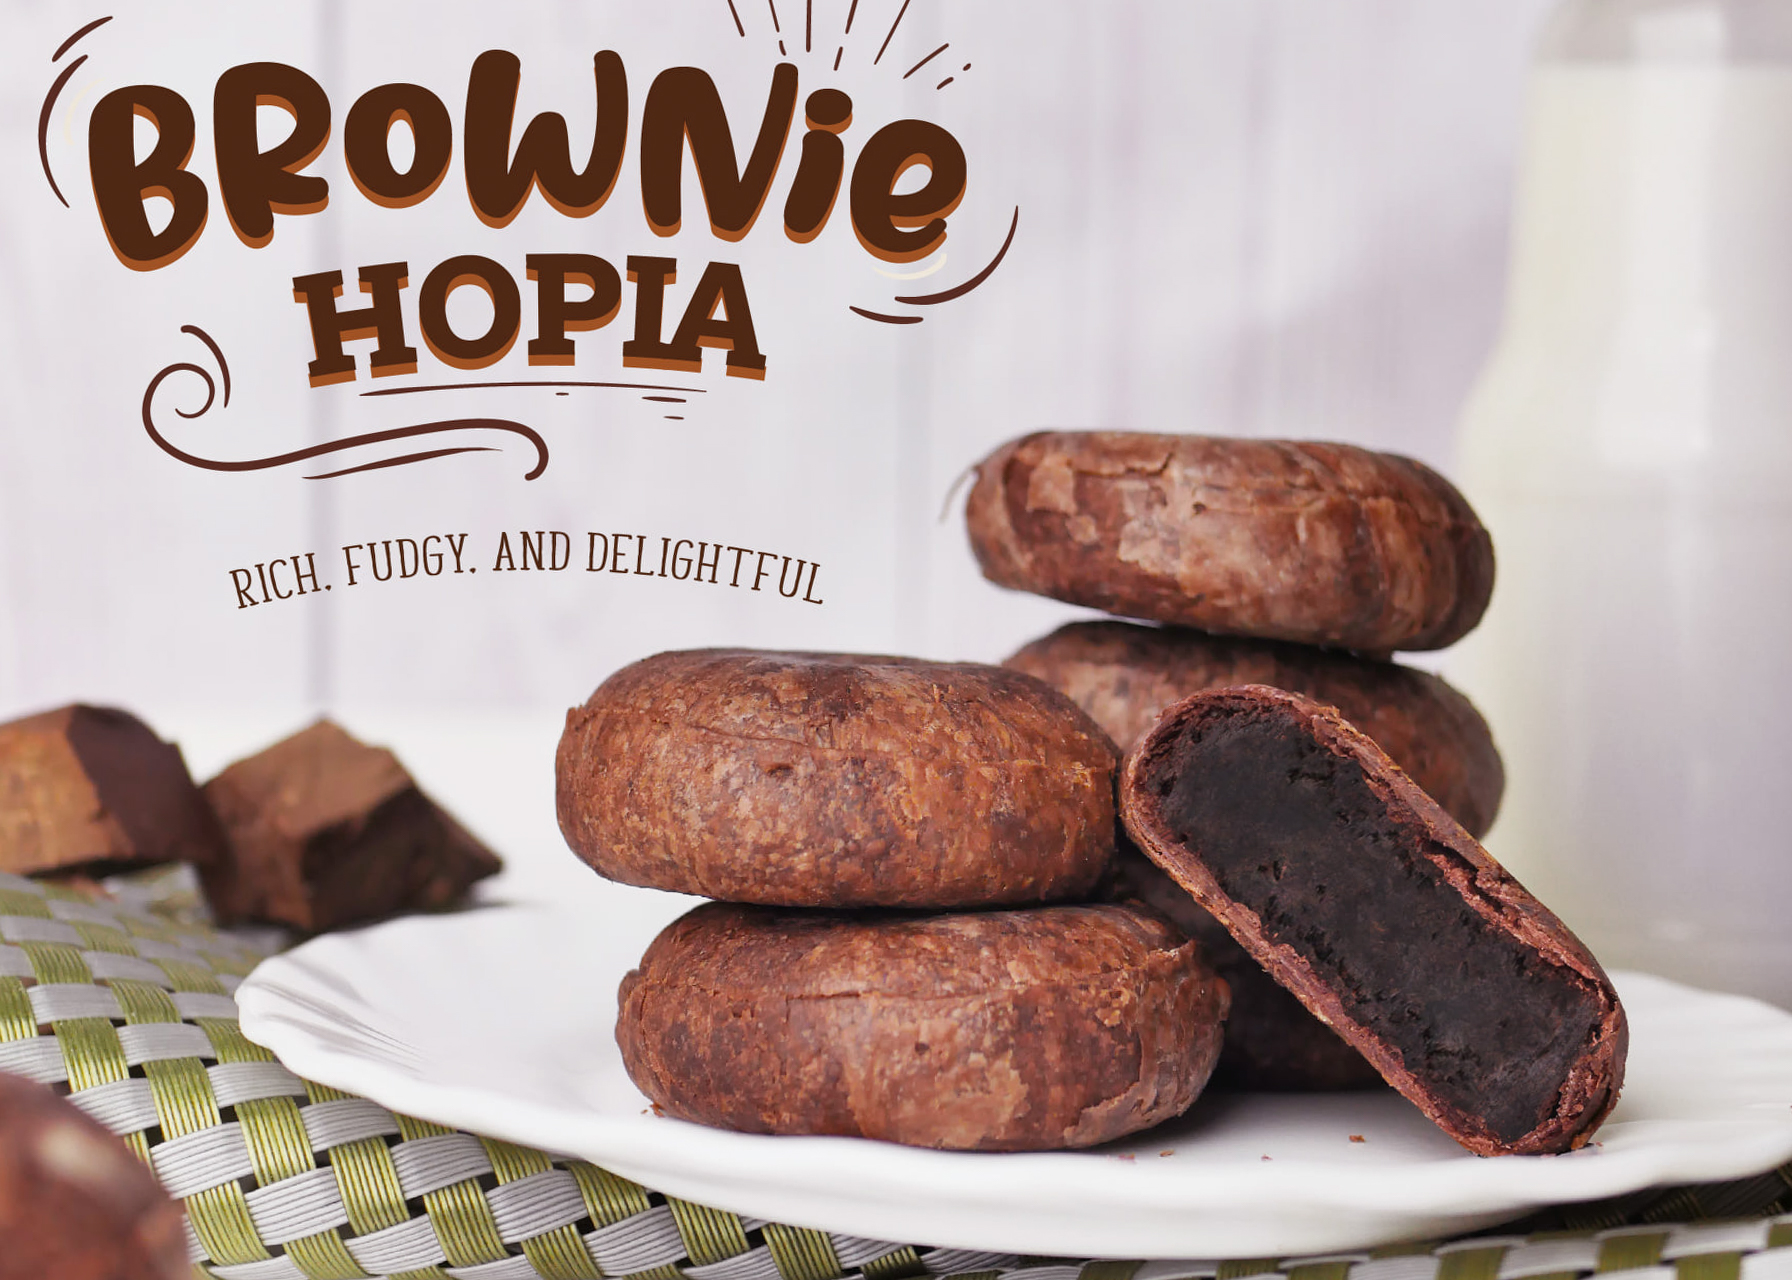 Are You Ready For Eng Bee Tin's New Brownie Hopia?